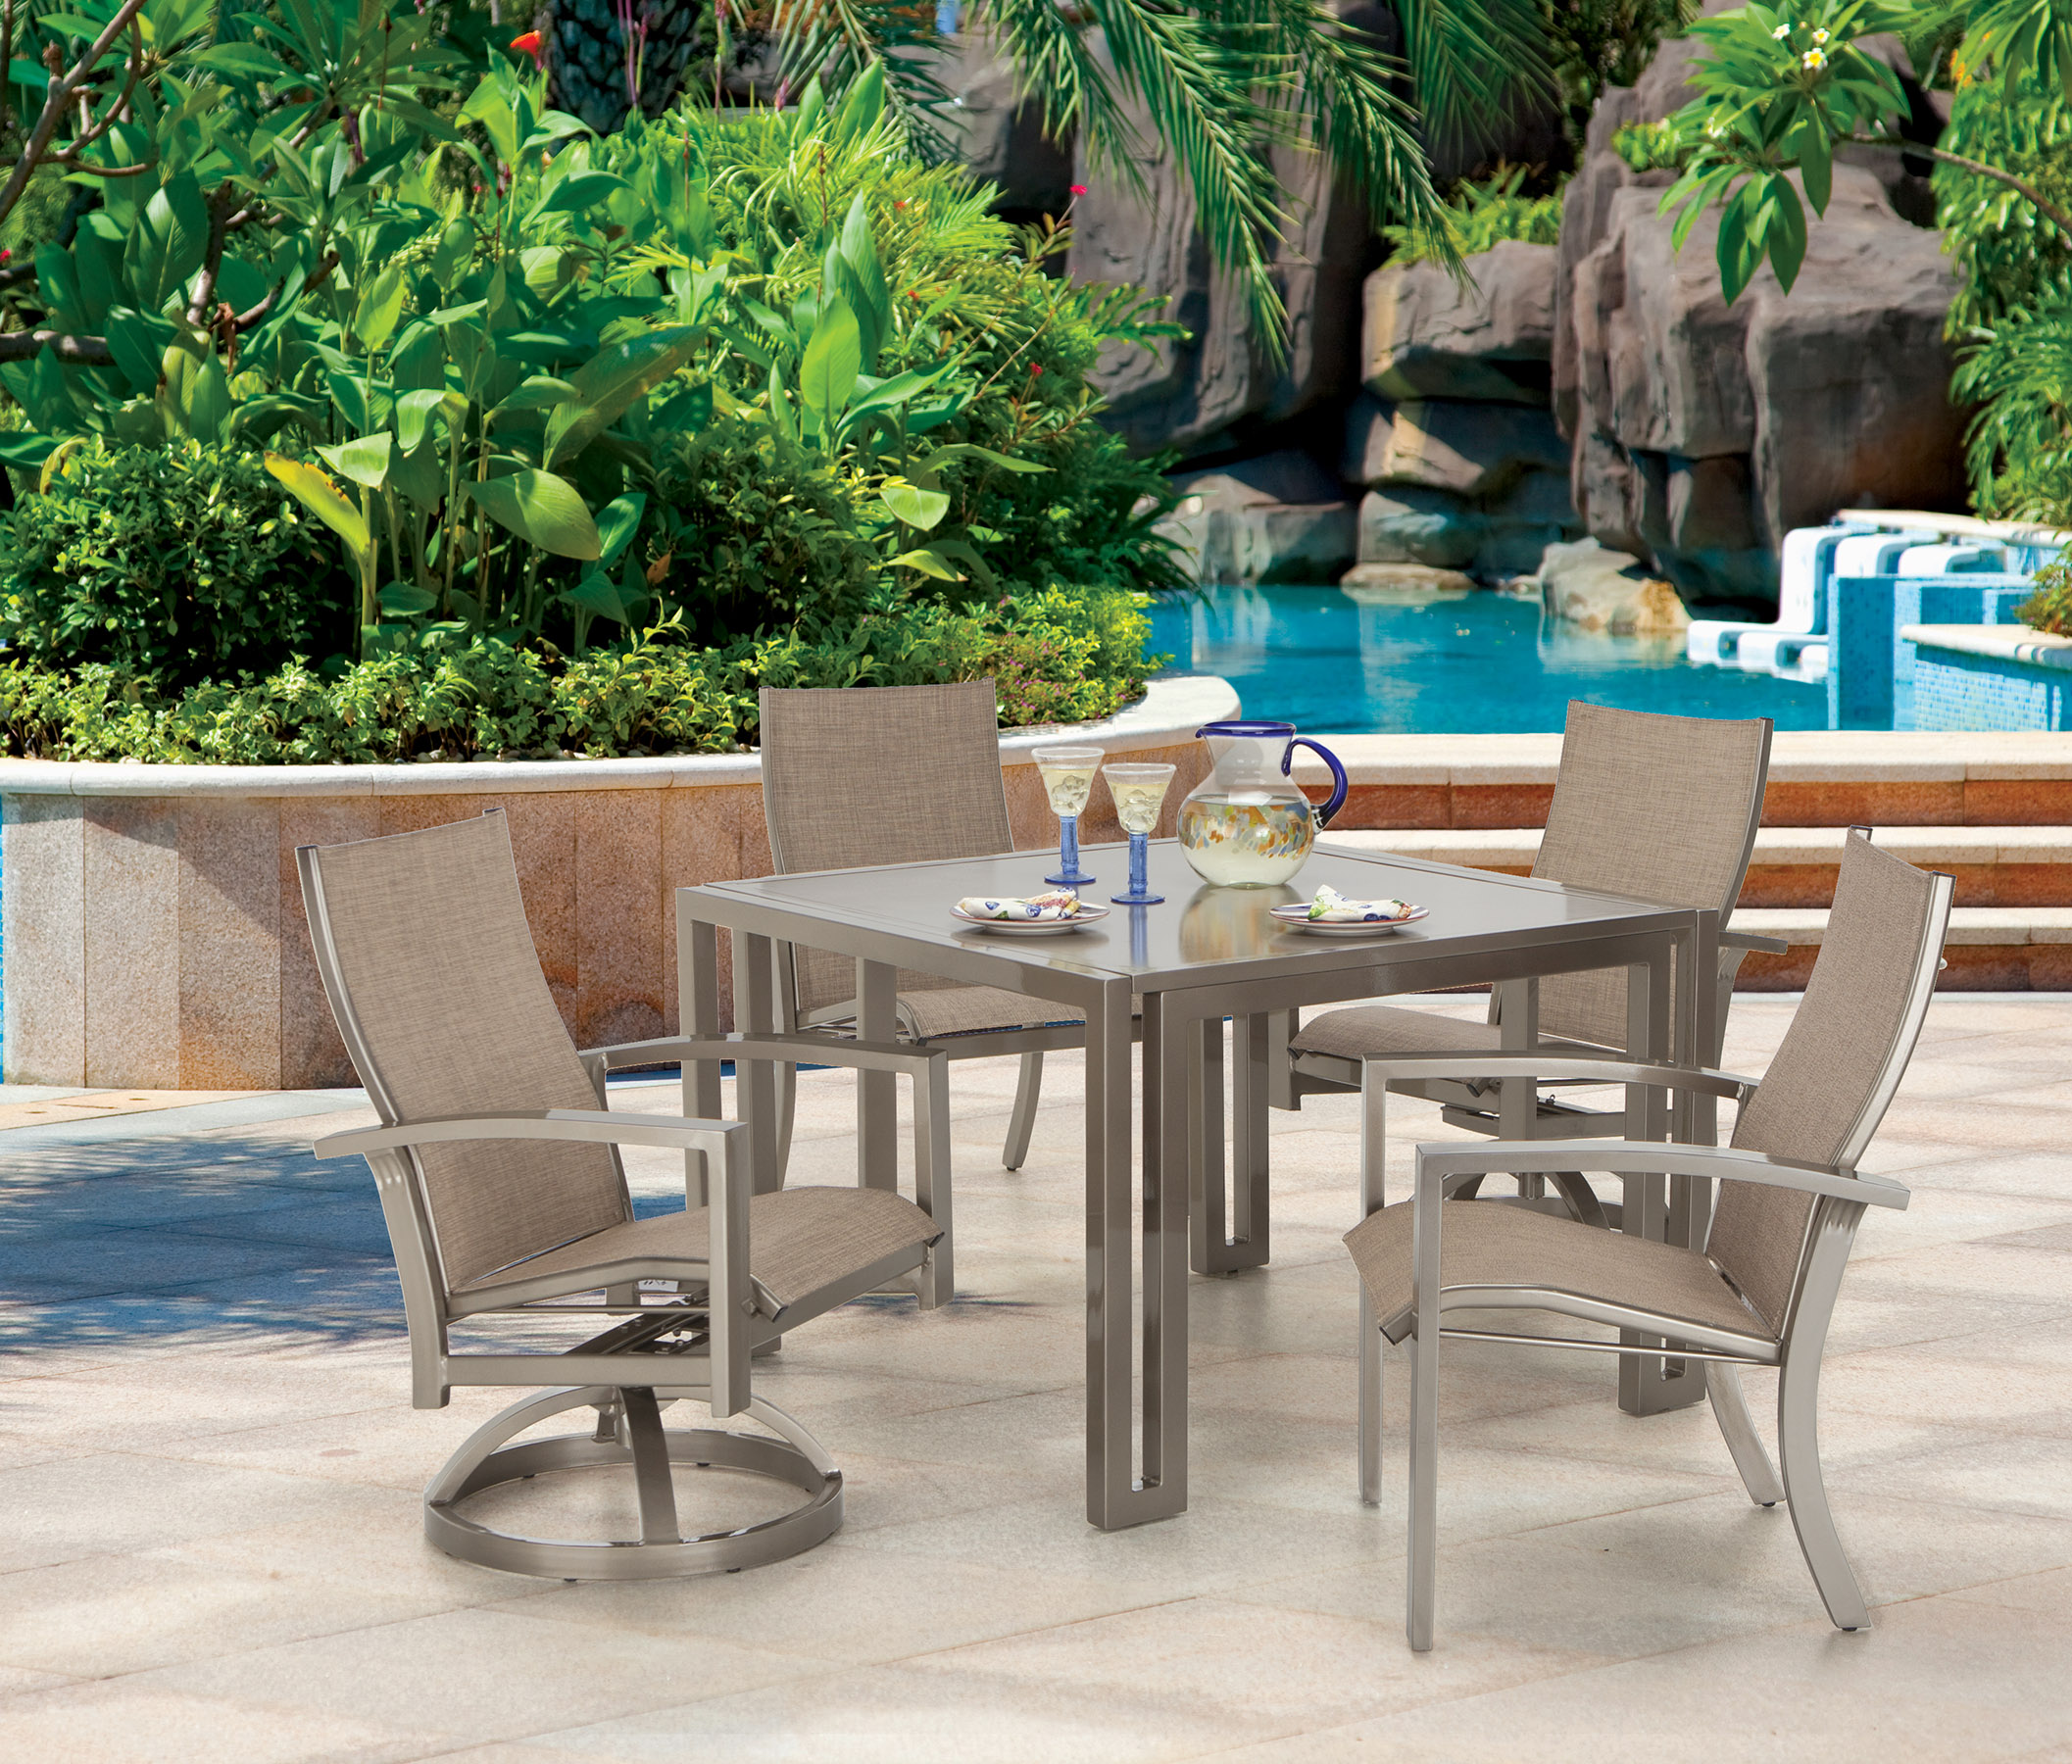 Luxury Castelle Patio Furniture